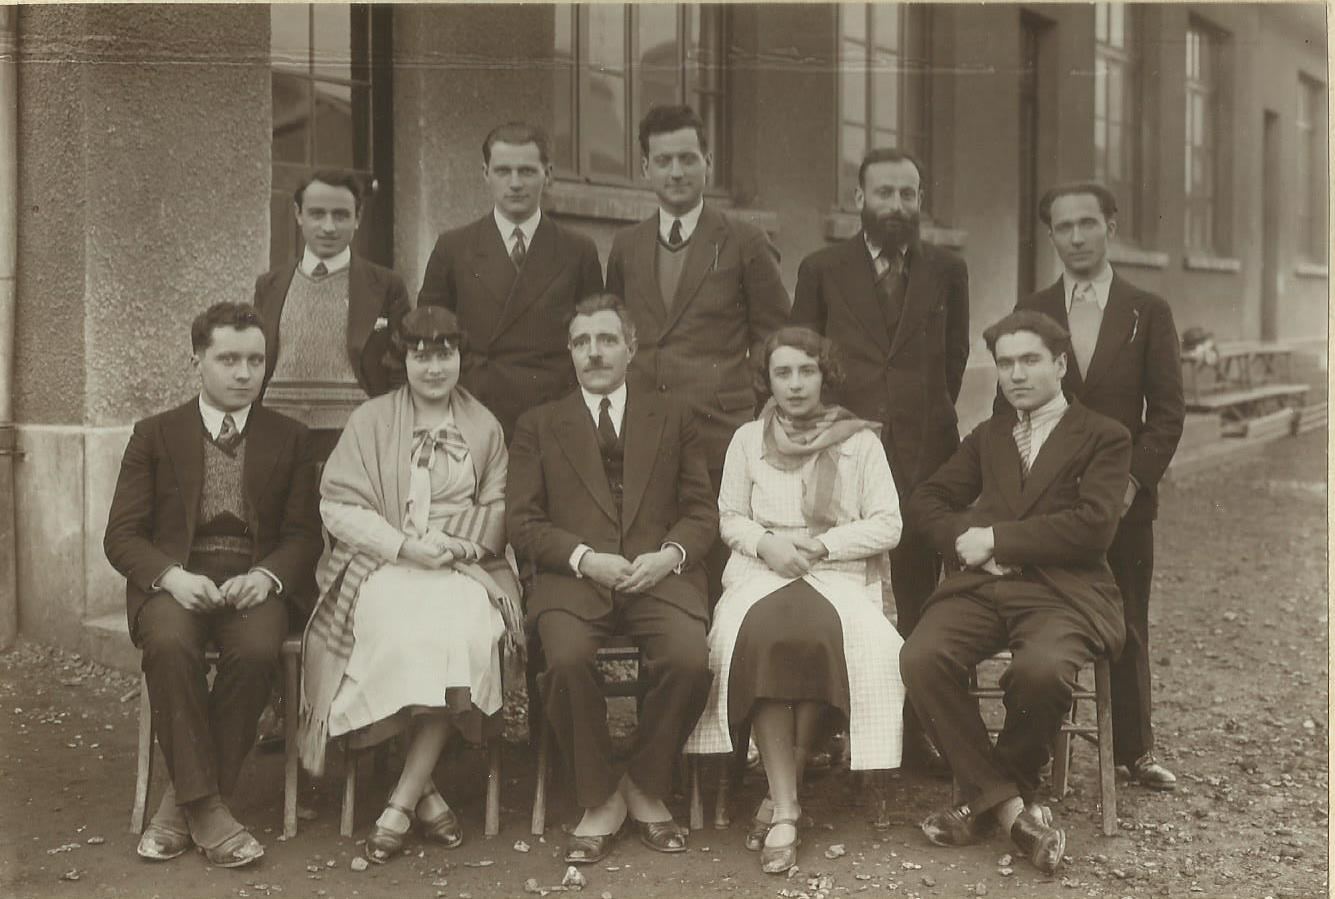 Dumont 1931 Instituteurs à Drancy CADRR.jpg